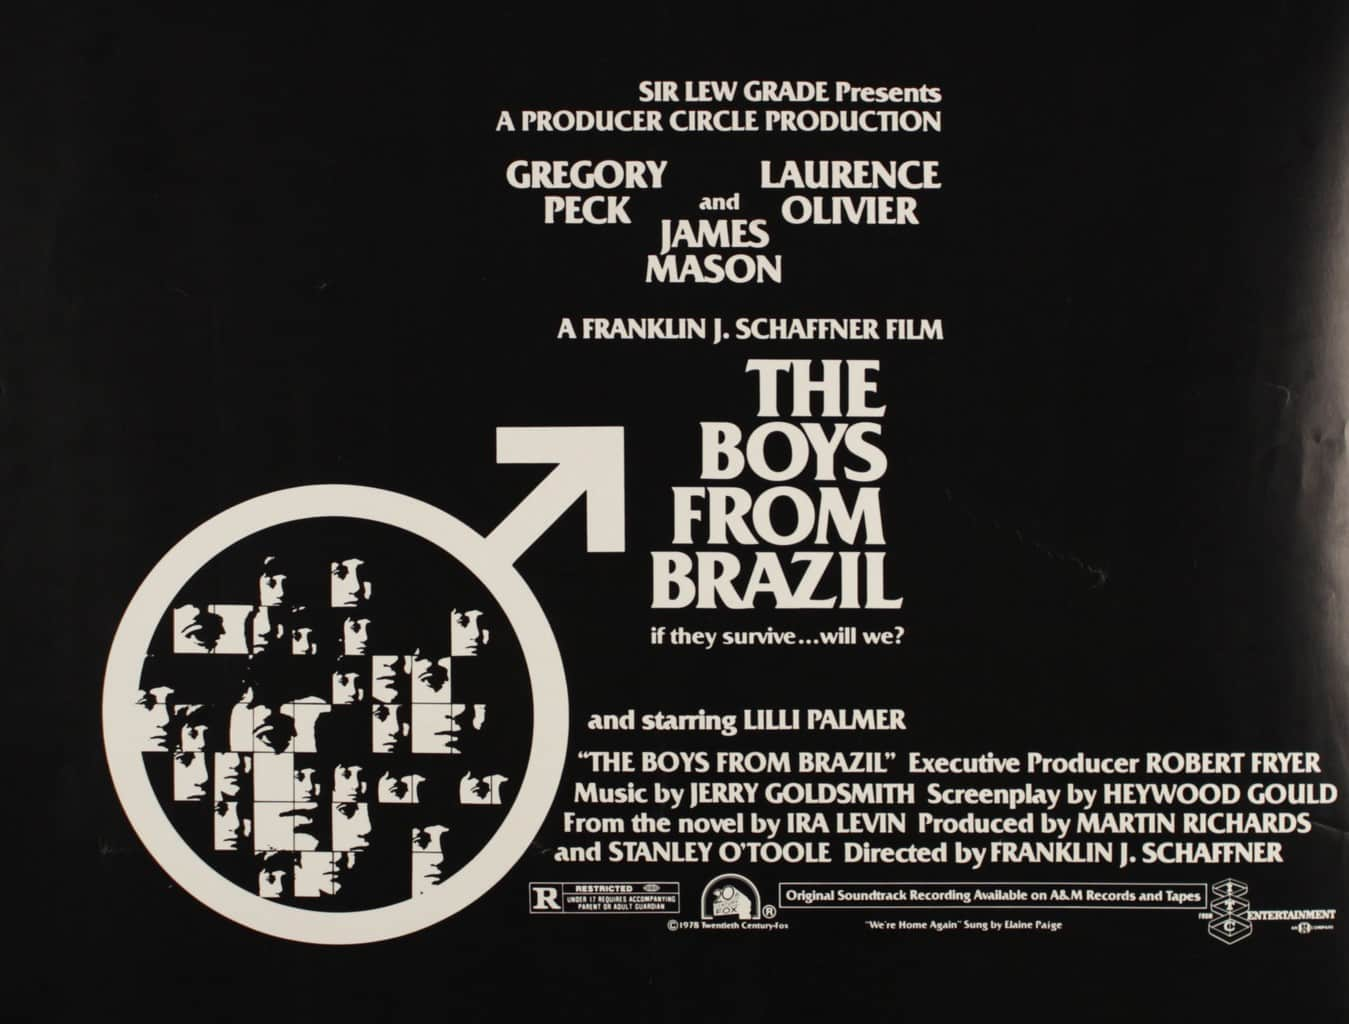 film reviews   movies   features   BRWC The Boys From Brazil (1978)- A Review And Rant